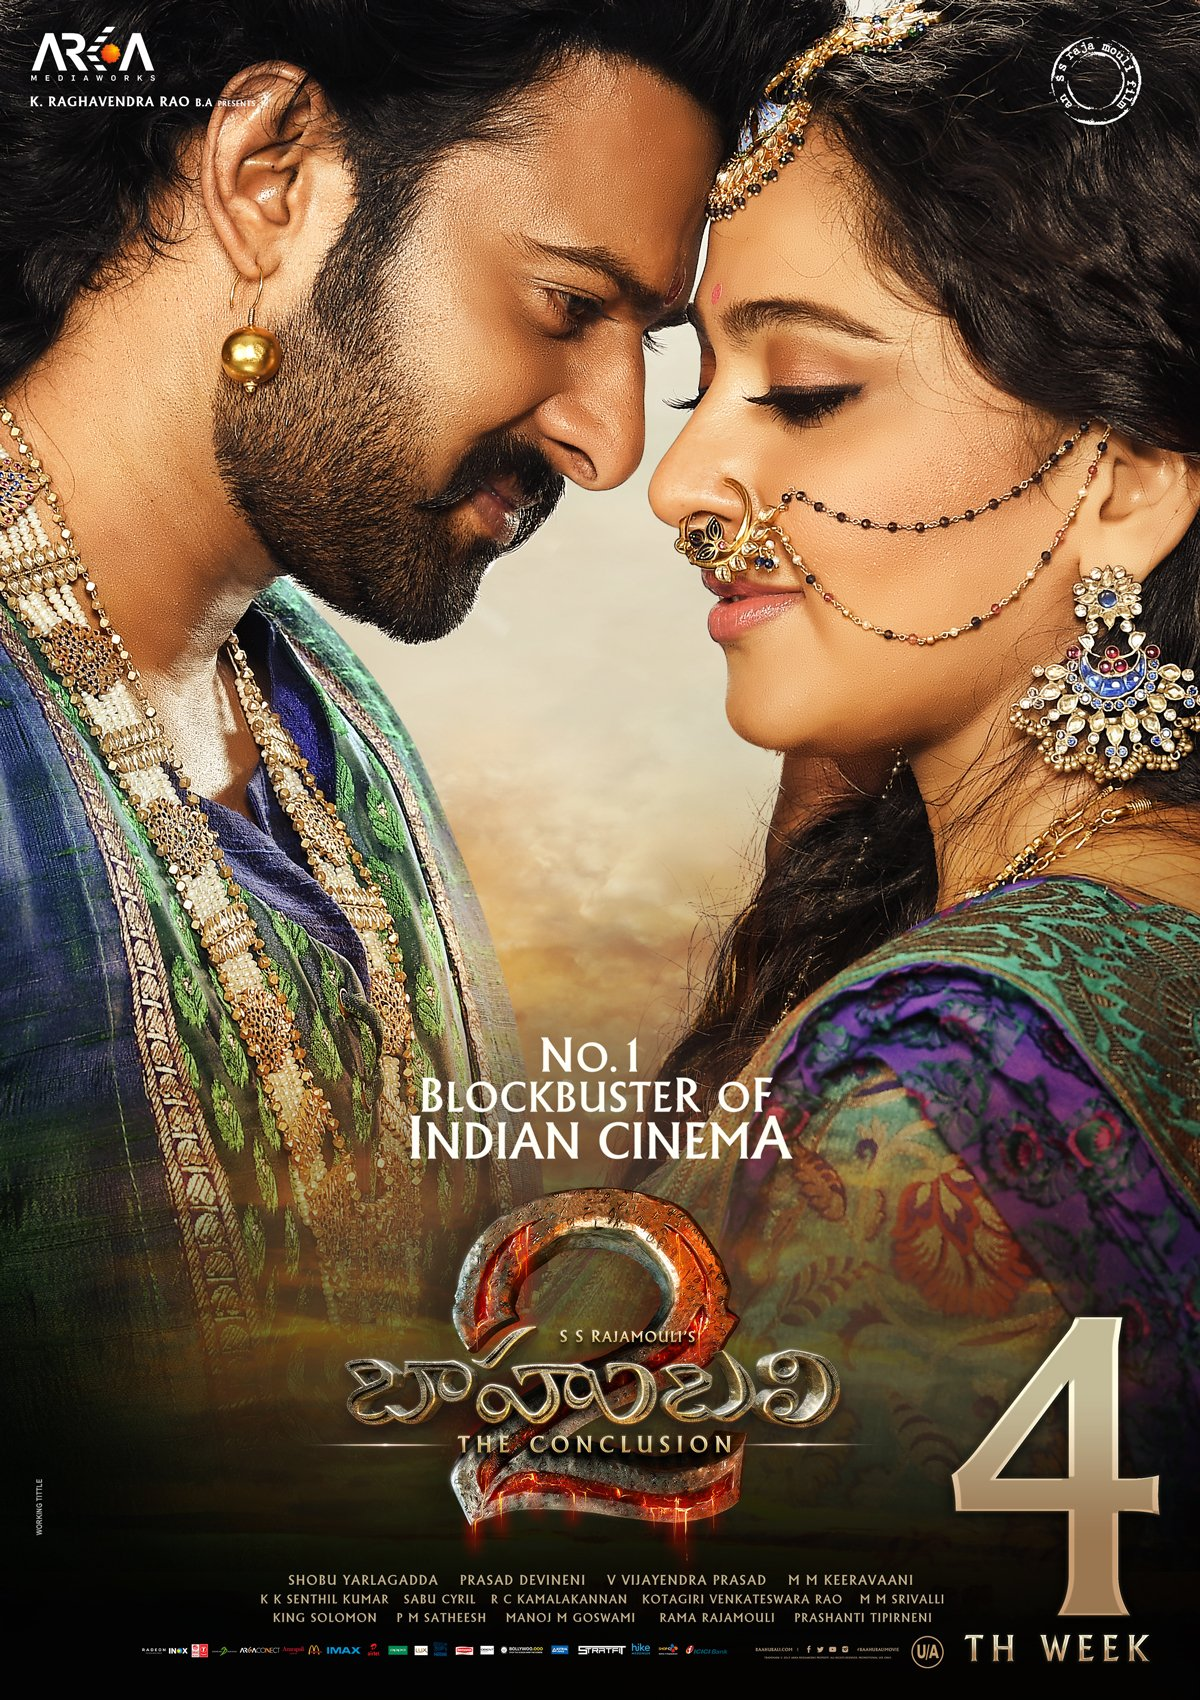 Prabhas Baahubali The Conclusion Movie Wallpapers Ultra Hd Posters